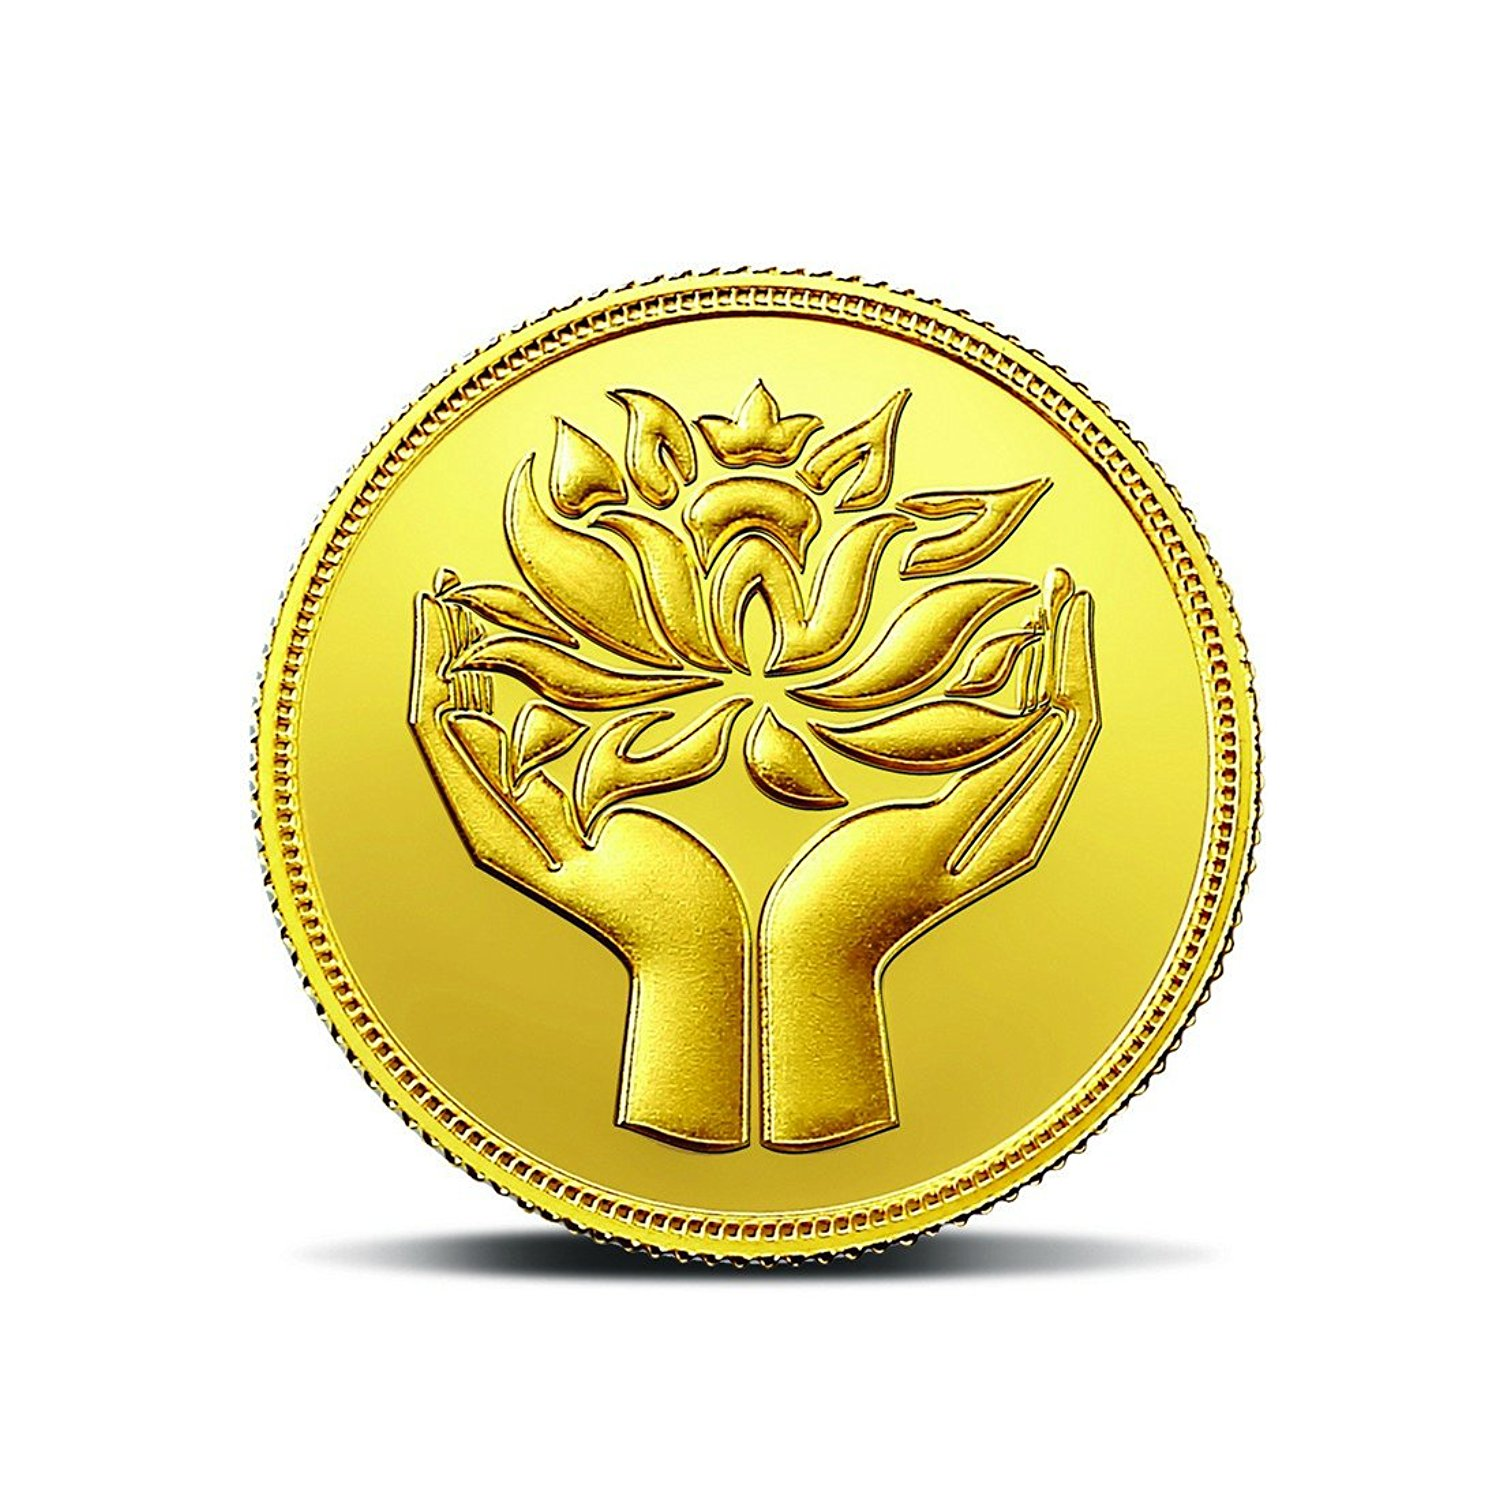 MMTC-PAMP India Pvt. Ltd. Lotus series 24k (999.9) purity 5 gm Gold Coin